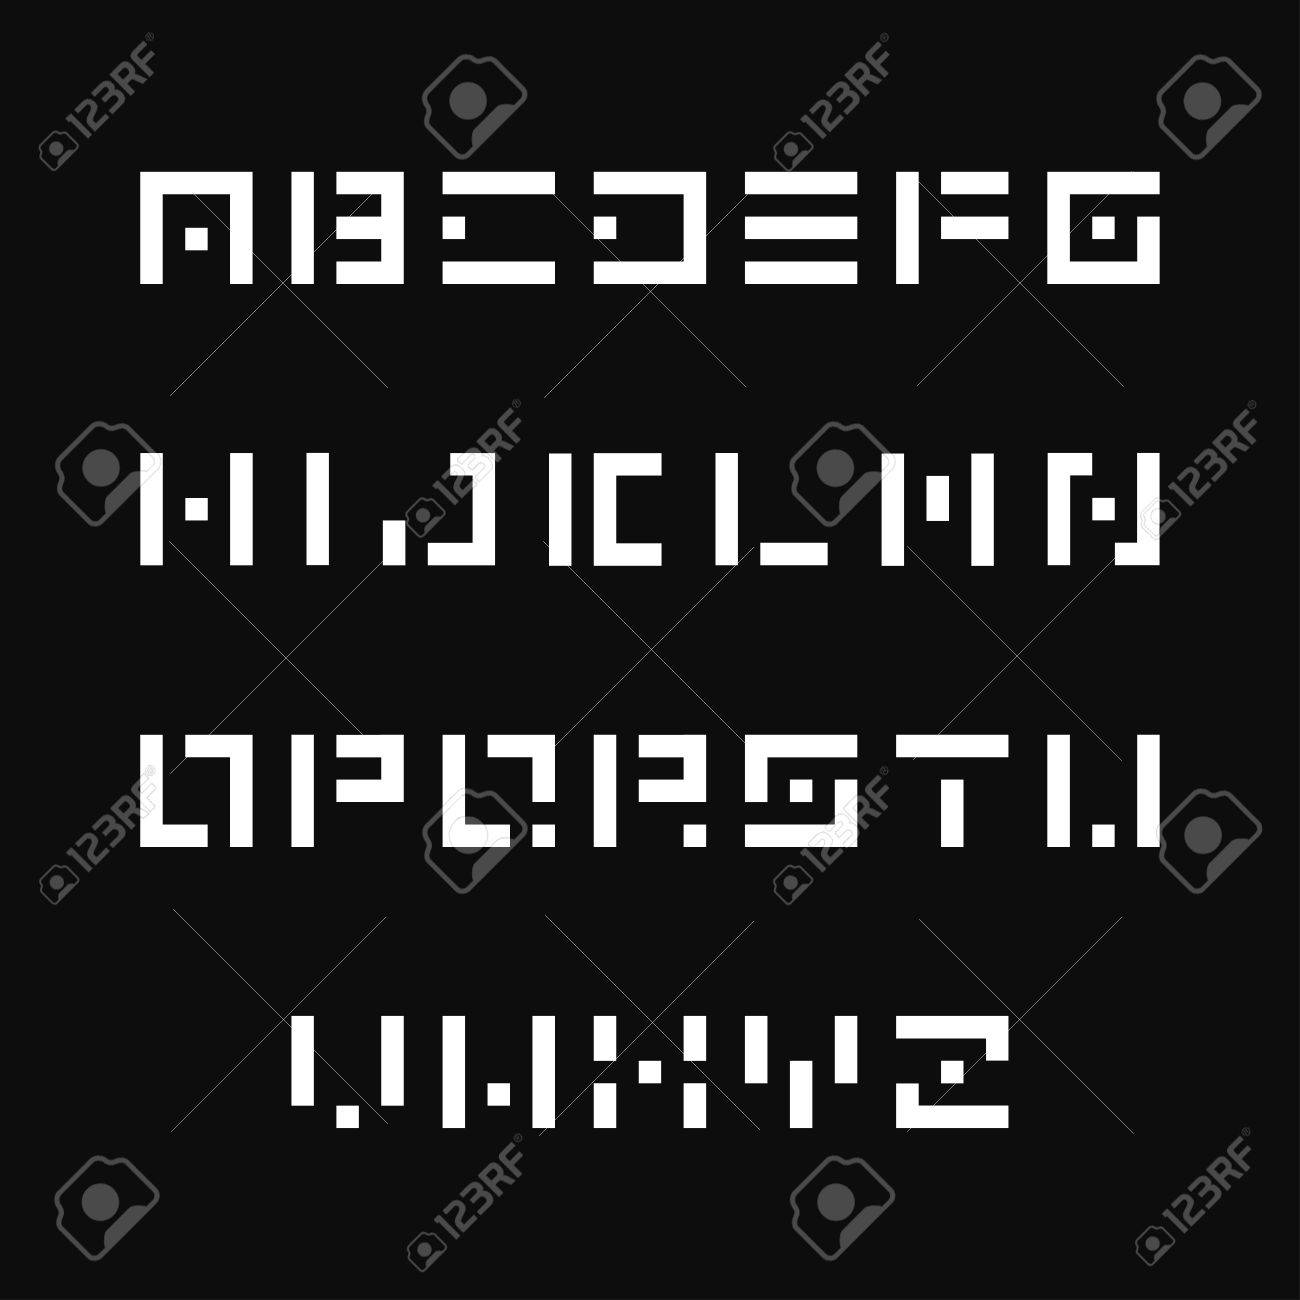 Simple Stencil Font Vector English Alphabet Similar To Origami Letters Stock